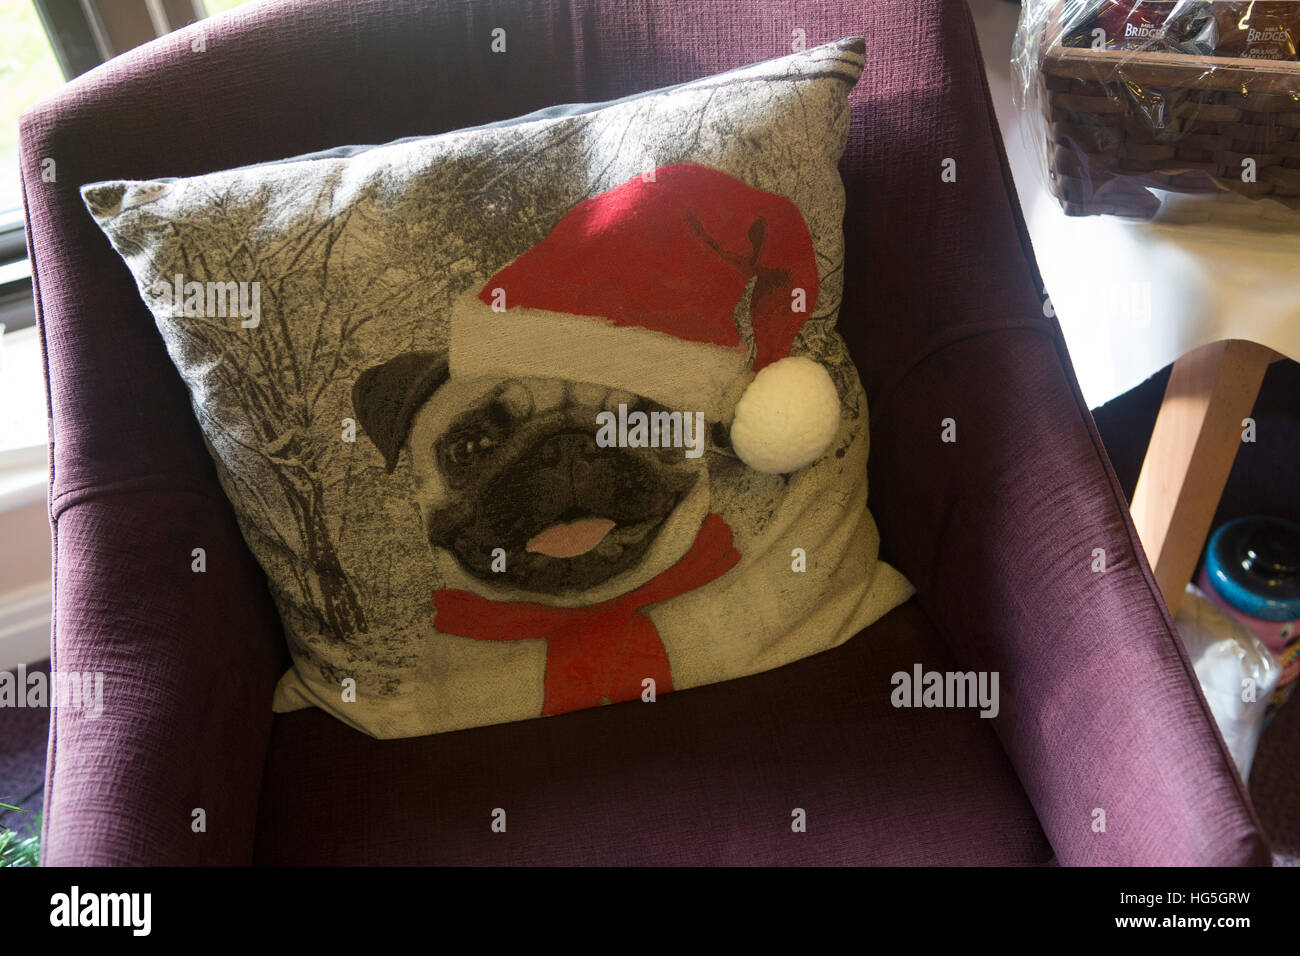 Dog cushion with portrait of a pug in a father christmas hat. - Stock Image